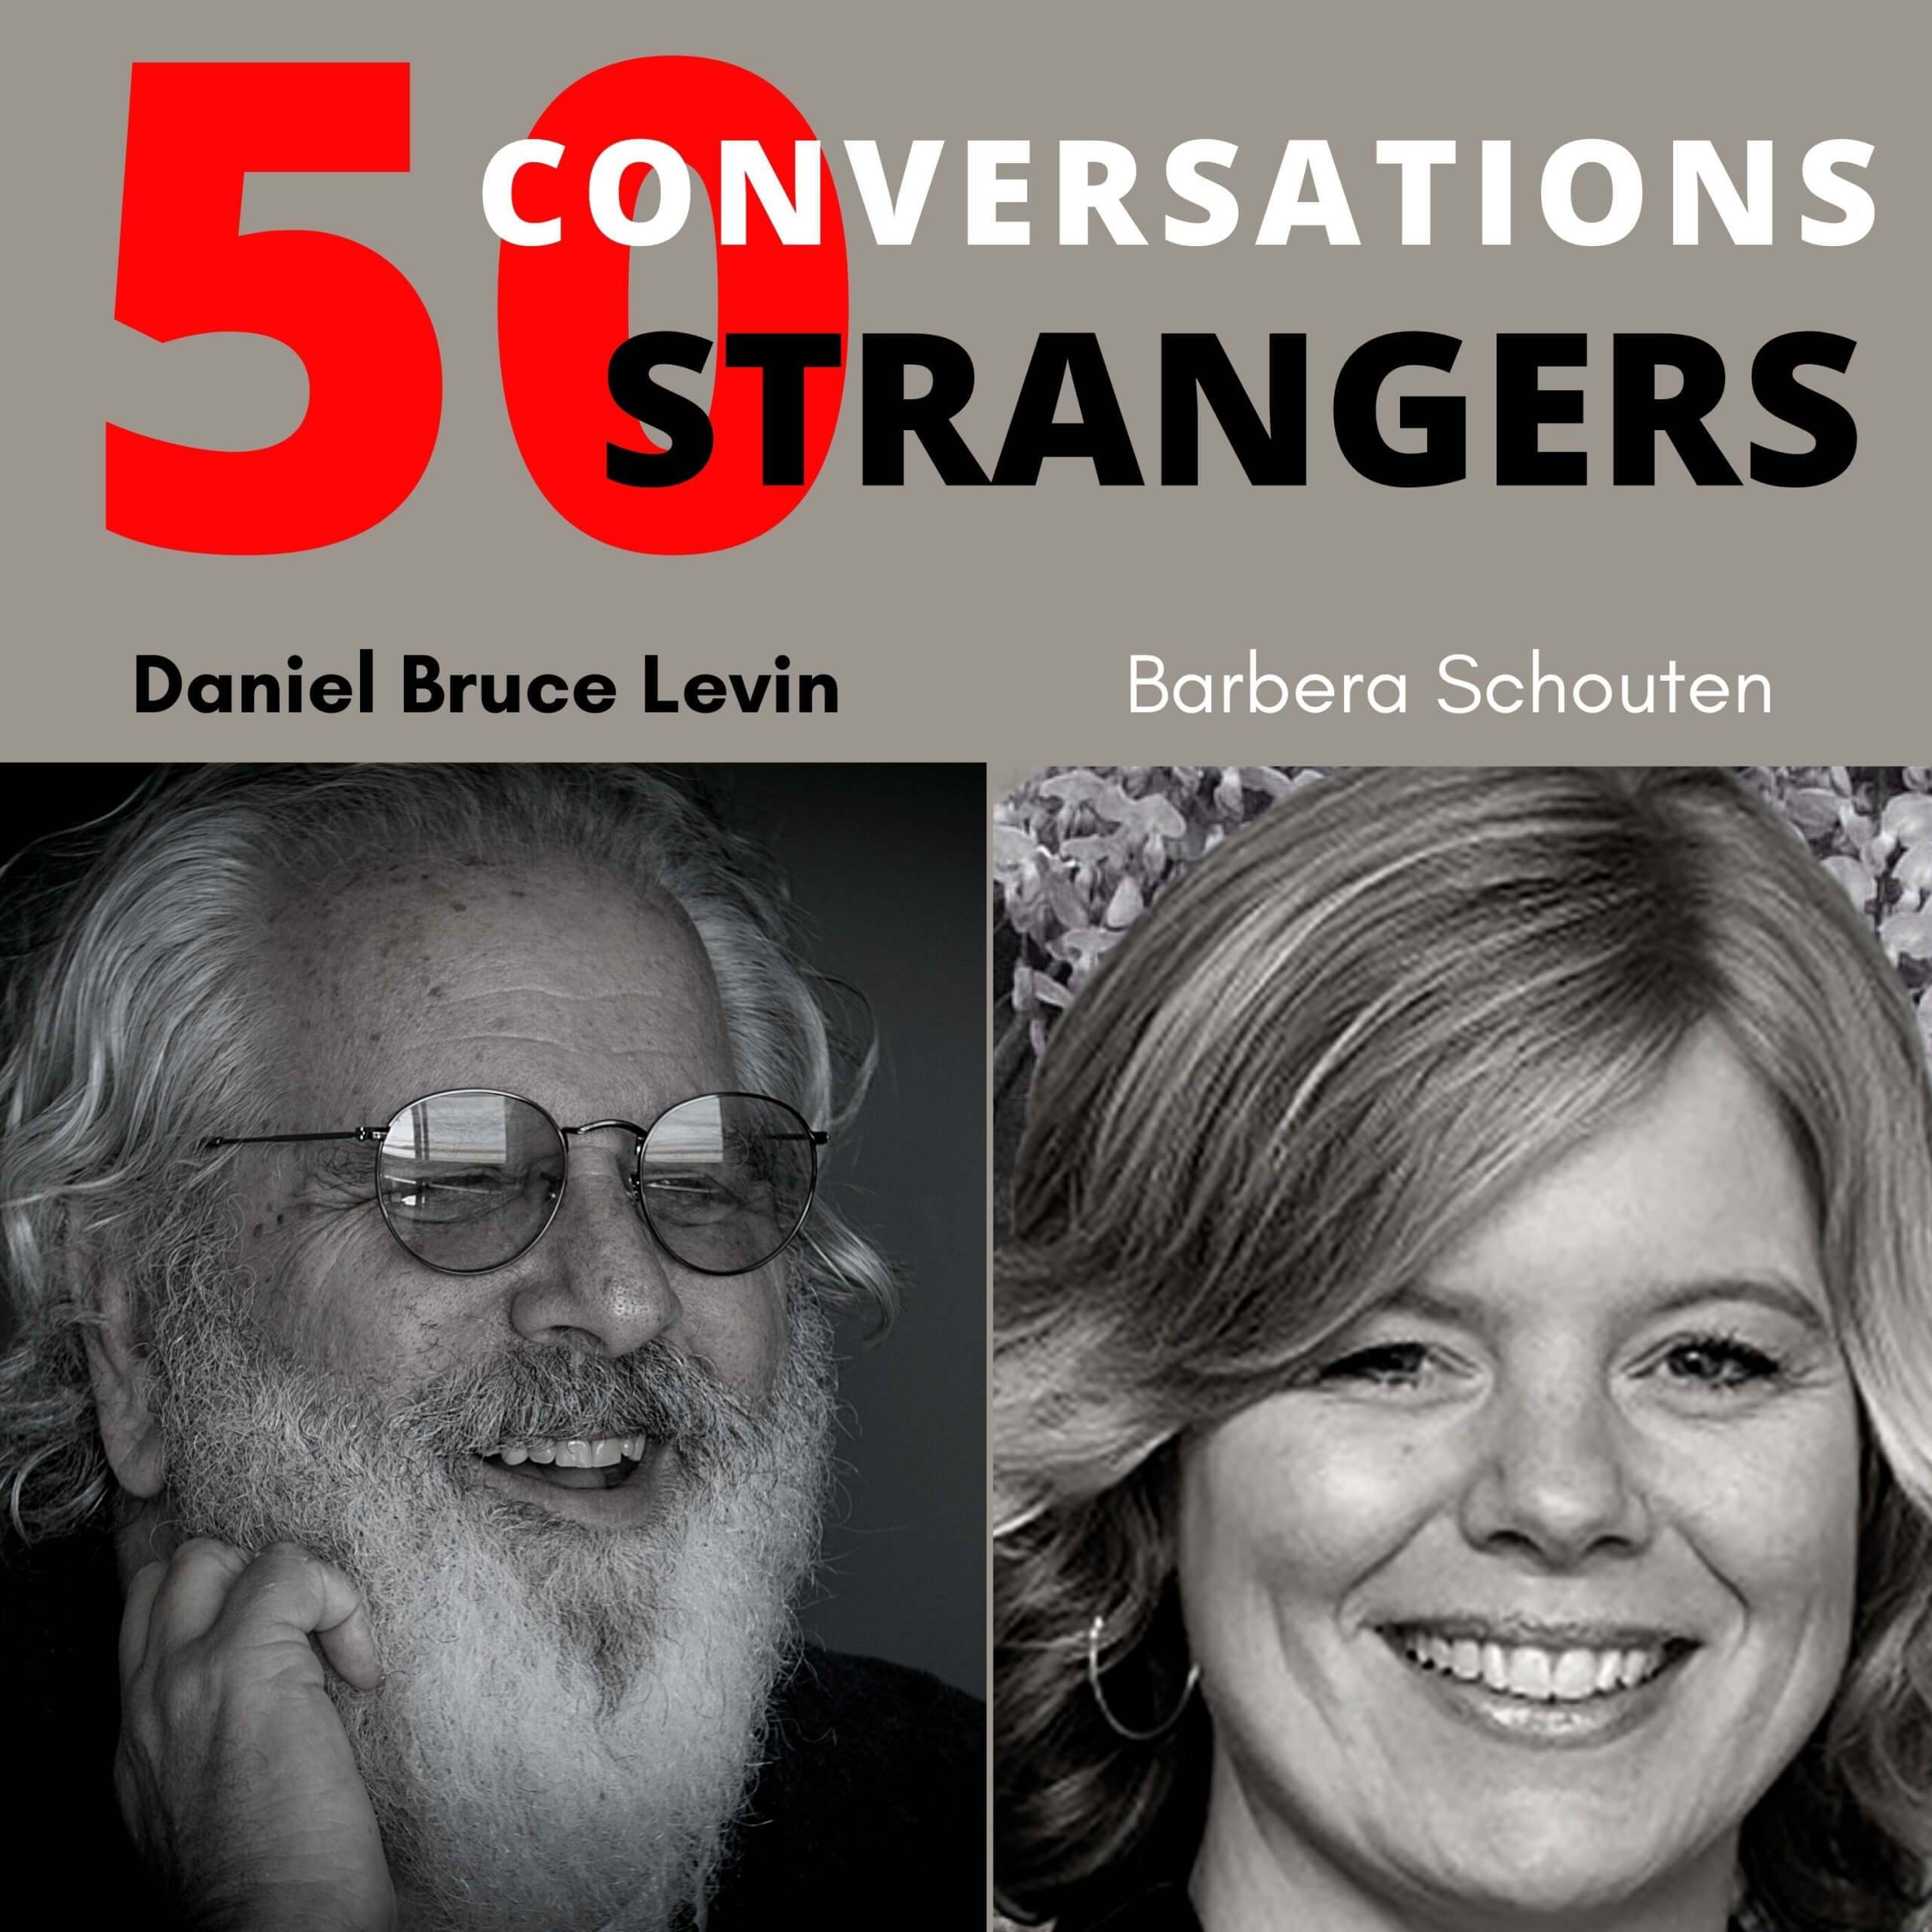 50 Conversations with 50 Strangers with Barbera Schoute